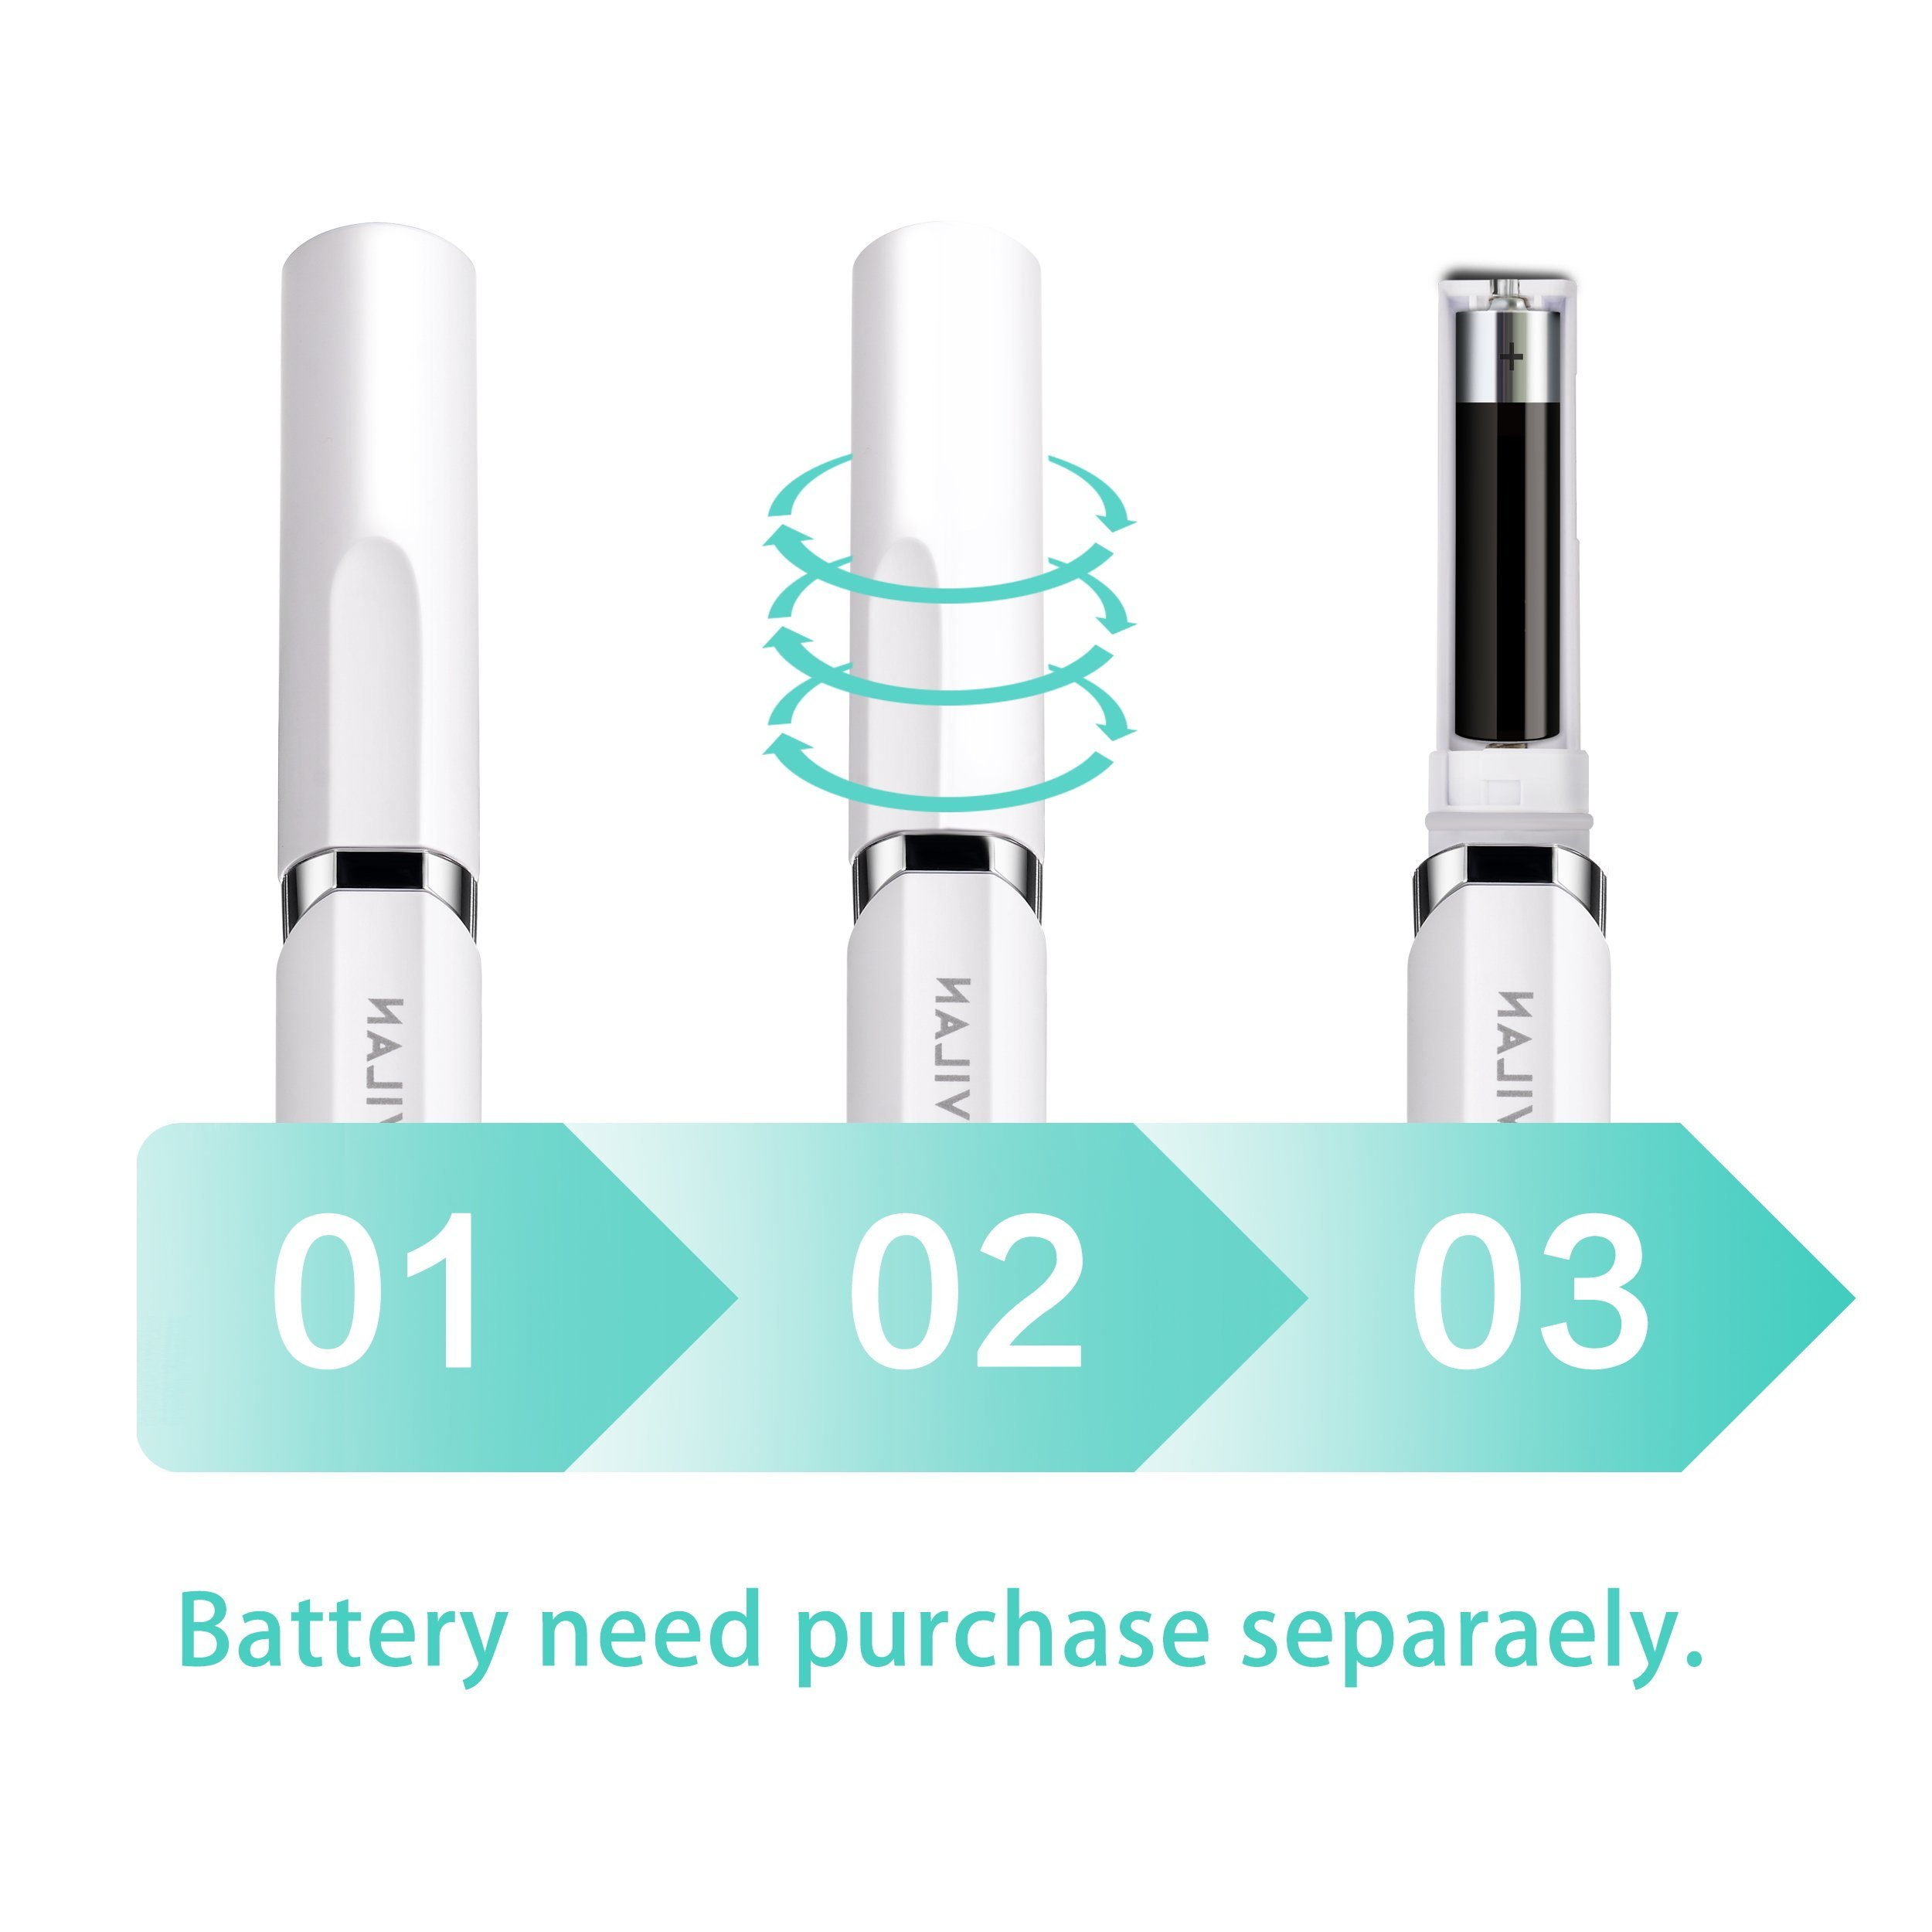 Travel Electric Toothbrush by Gevilan with Sonic Powerful Vibration and 2 Modes Battery Operated, Waterproof and Portable Lipstick Mini Design for Daily Oral Beauty Care, Trip and Outdoor Camping